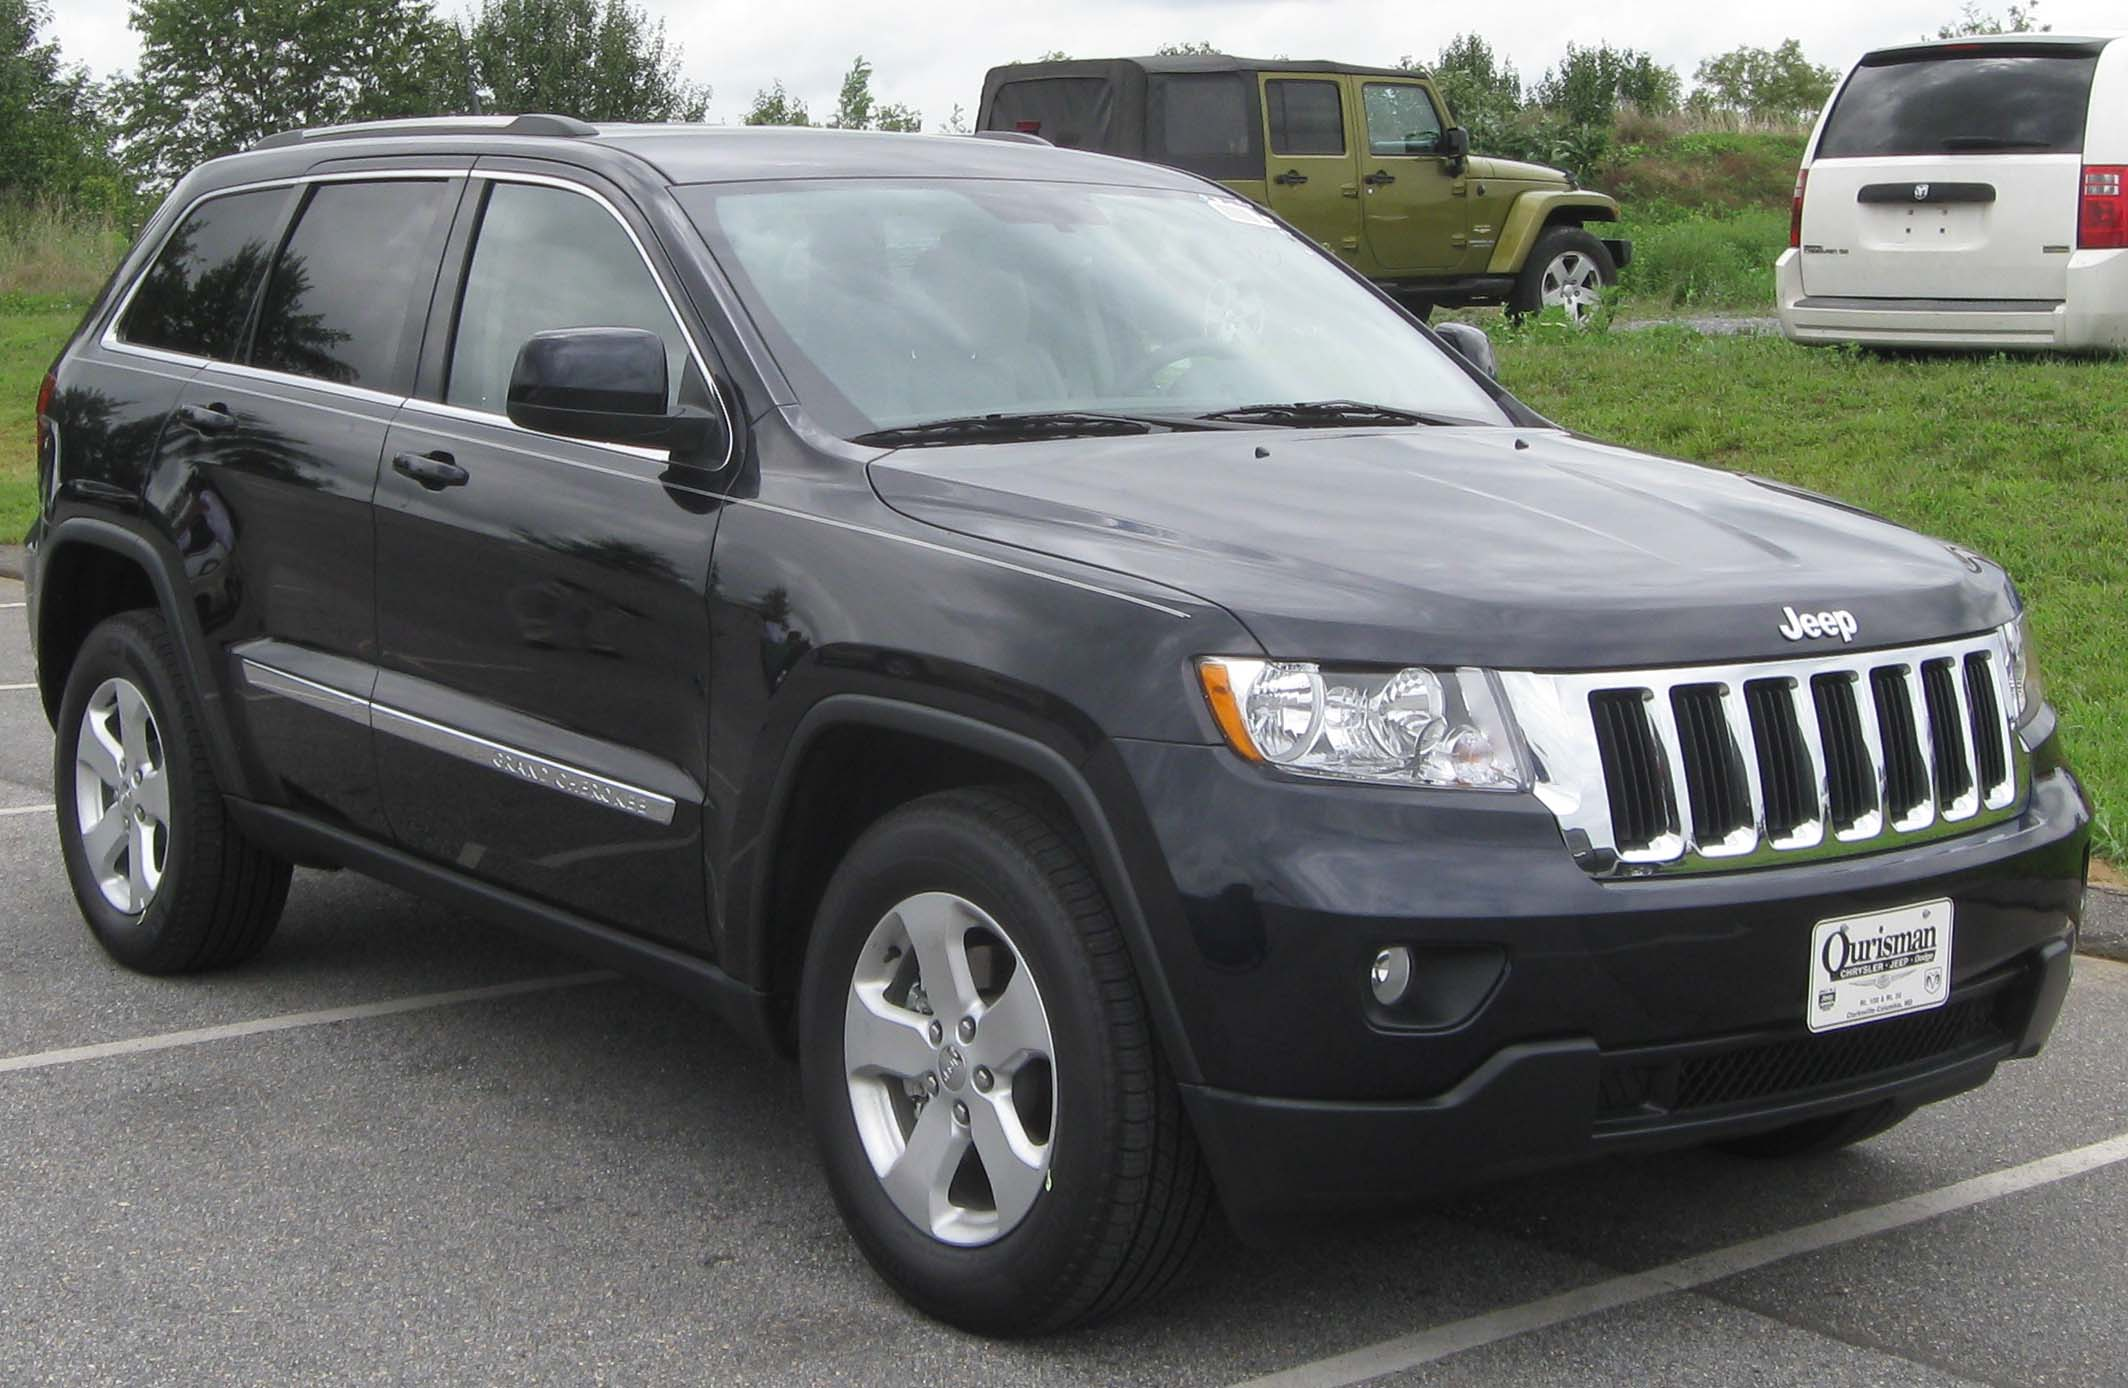 jeep grand cherokee tractor construction plant wiki. Black Bedroom Furniture Sets. Home Design Ideas